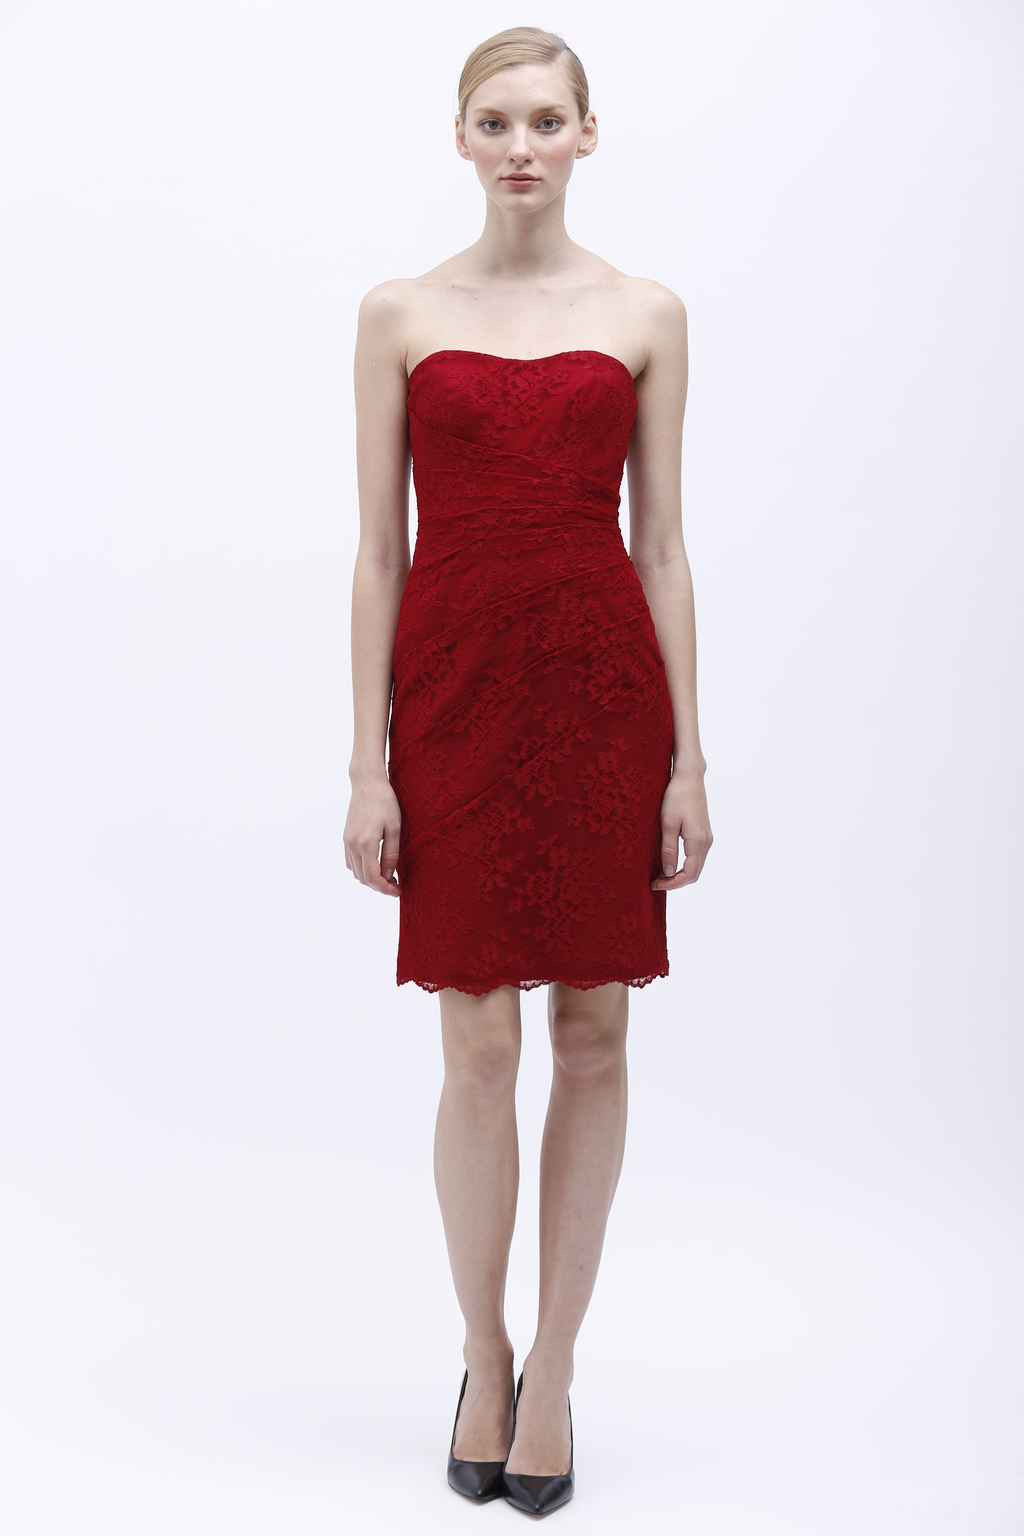 Monique Lhuillier Spring 2014 Bridesmaid Dress 450147 Cranberry